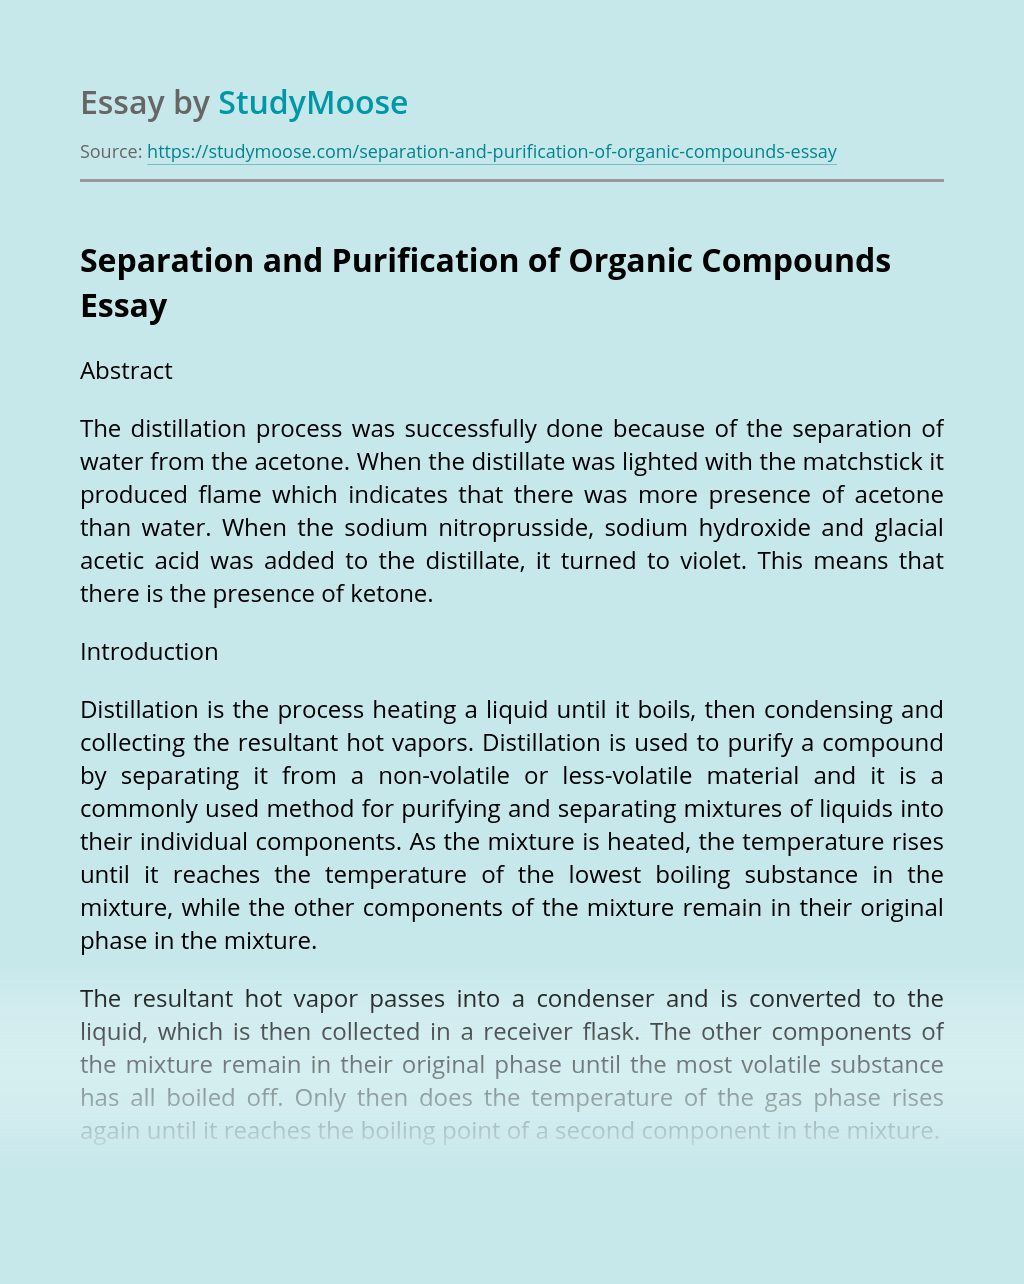 Separation and Purification of Organic Compounds